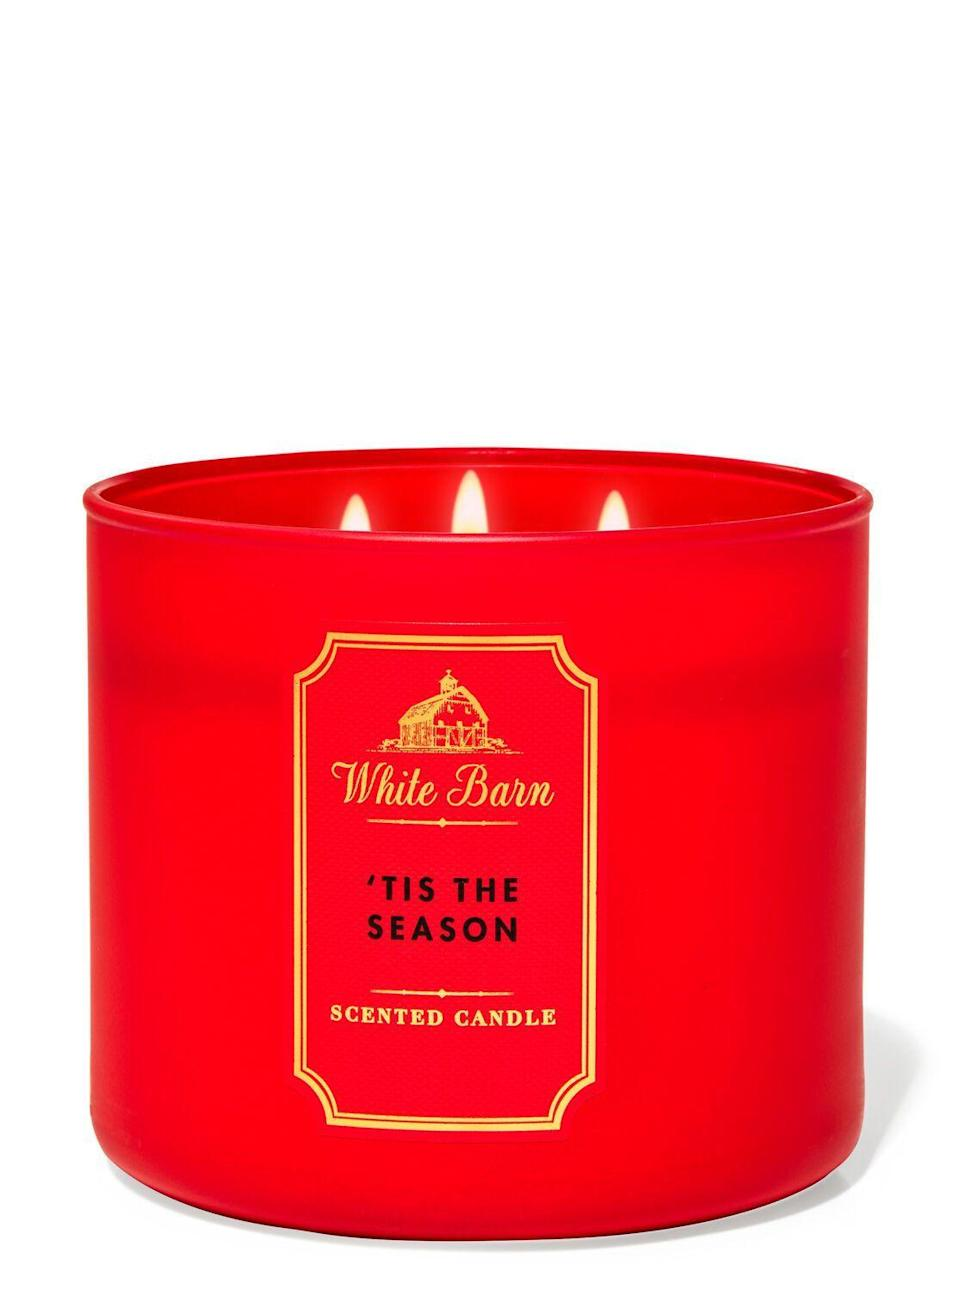 "<p><strong>Bath & Body Works</strong></p><p>bathandbodyworks.com</p><p><strong>$24.50</strong></p><p><a href=""https://www.bathandbodyworks.com/p/tis-the-season-3-wick-candle-026180776.html"" rel=""nofollow noopener"" target=""_blank"" data-ylk=""slk:Shop Now"" class=""link rapid-noclick-resp"">Shop Now</a></p><p>On my first, unlit waft I was concerned everything would suddenly smell like Red Hots. After lighting it, it smelled less like Red Hots but still spicy and cinnamon-y! I loved it a *lot* more than I thought I would. And it doubles as simple festive decor. </p>"